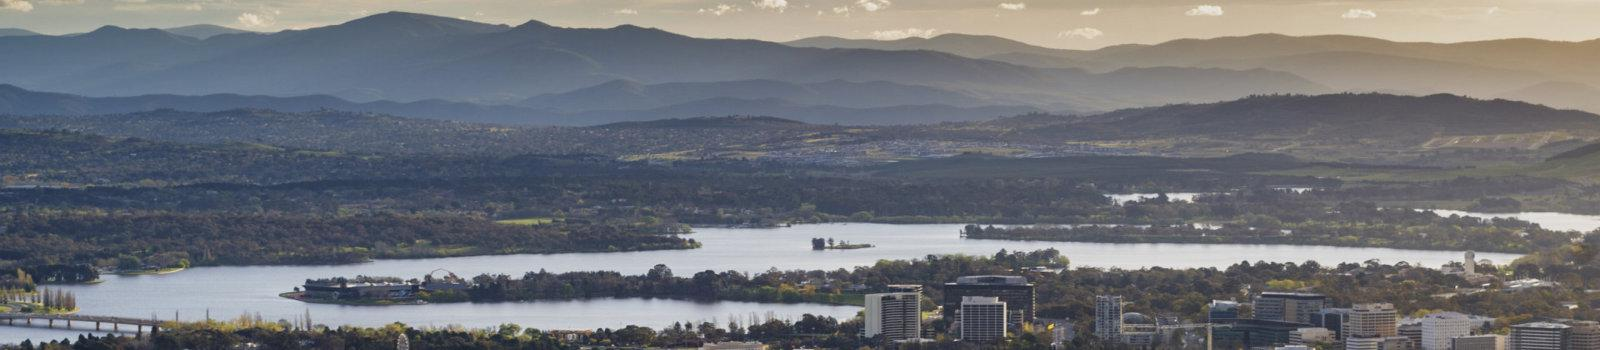 Canberra Lake Burley Griffin